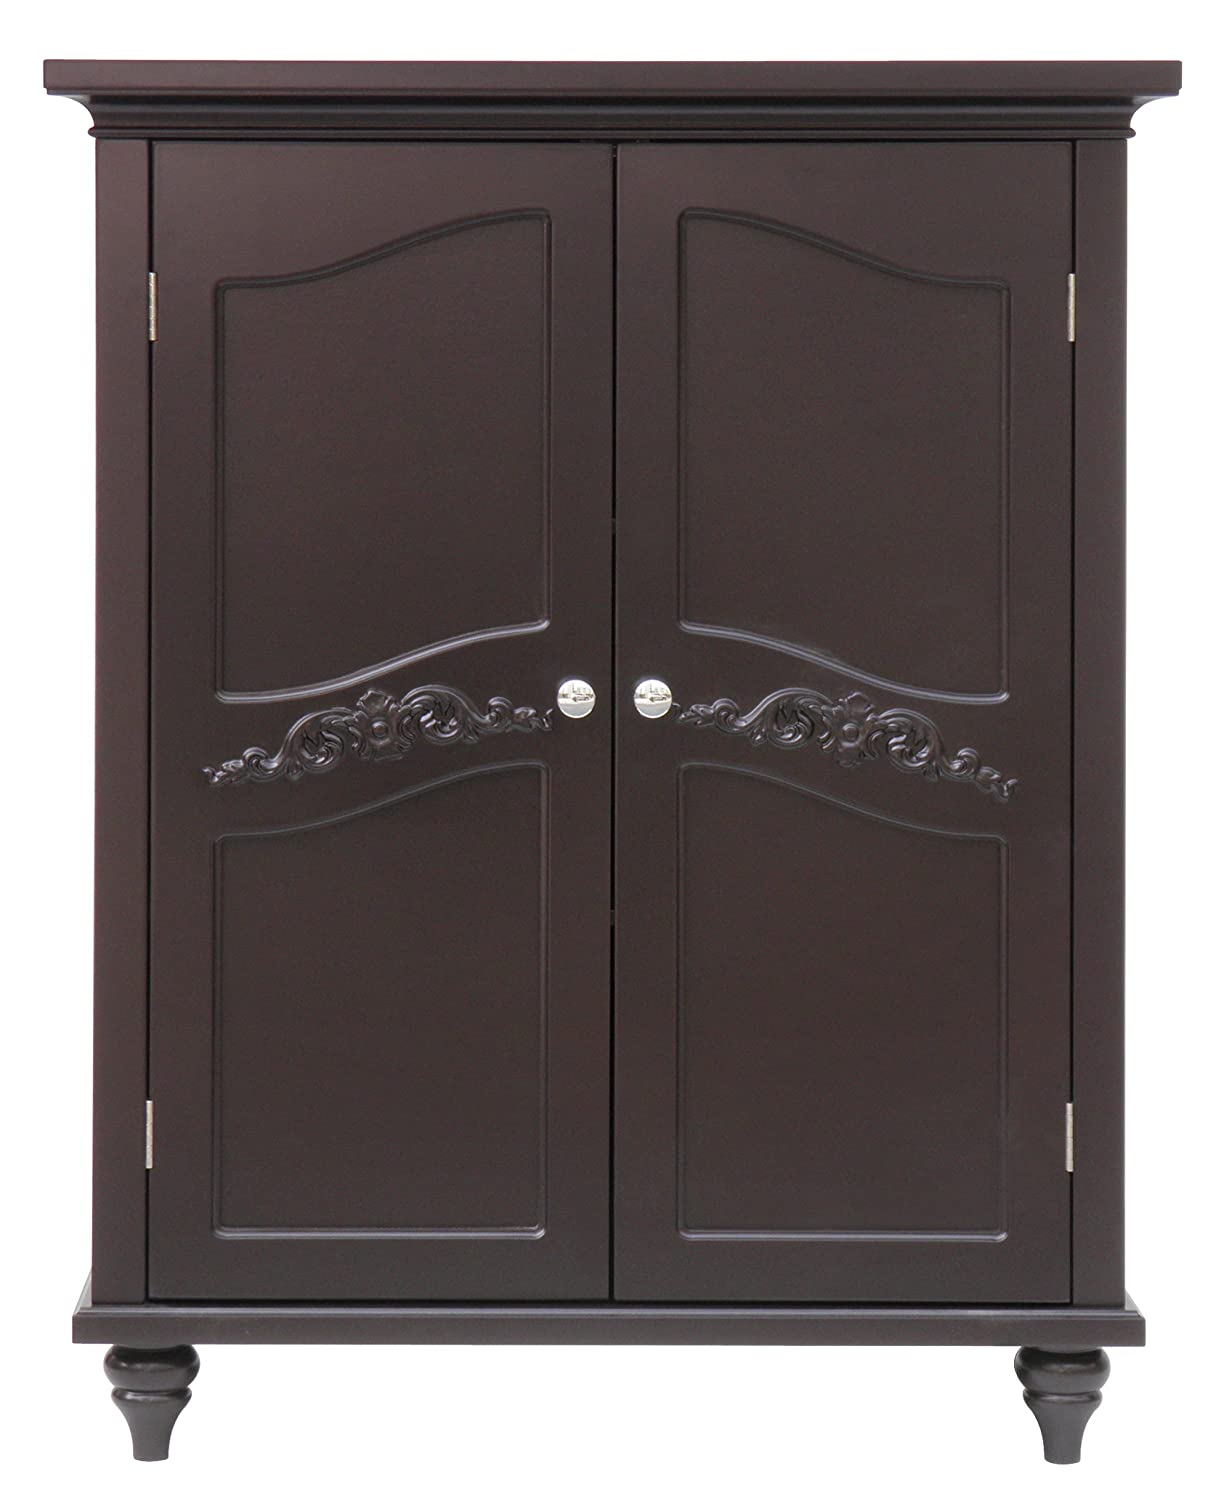 Amazon.com: Elegant Home Fashion Vera 2 Door Floor Cabinet, Dark Espresso:  Kitchen U0026 Dining